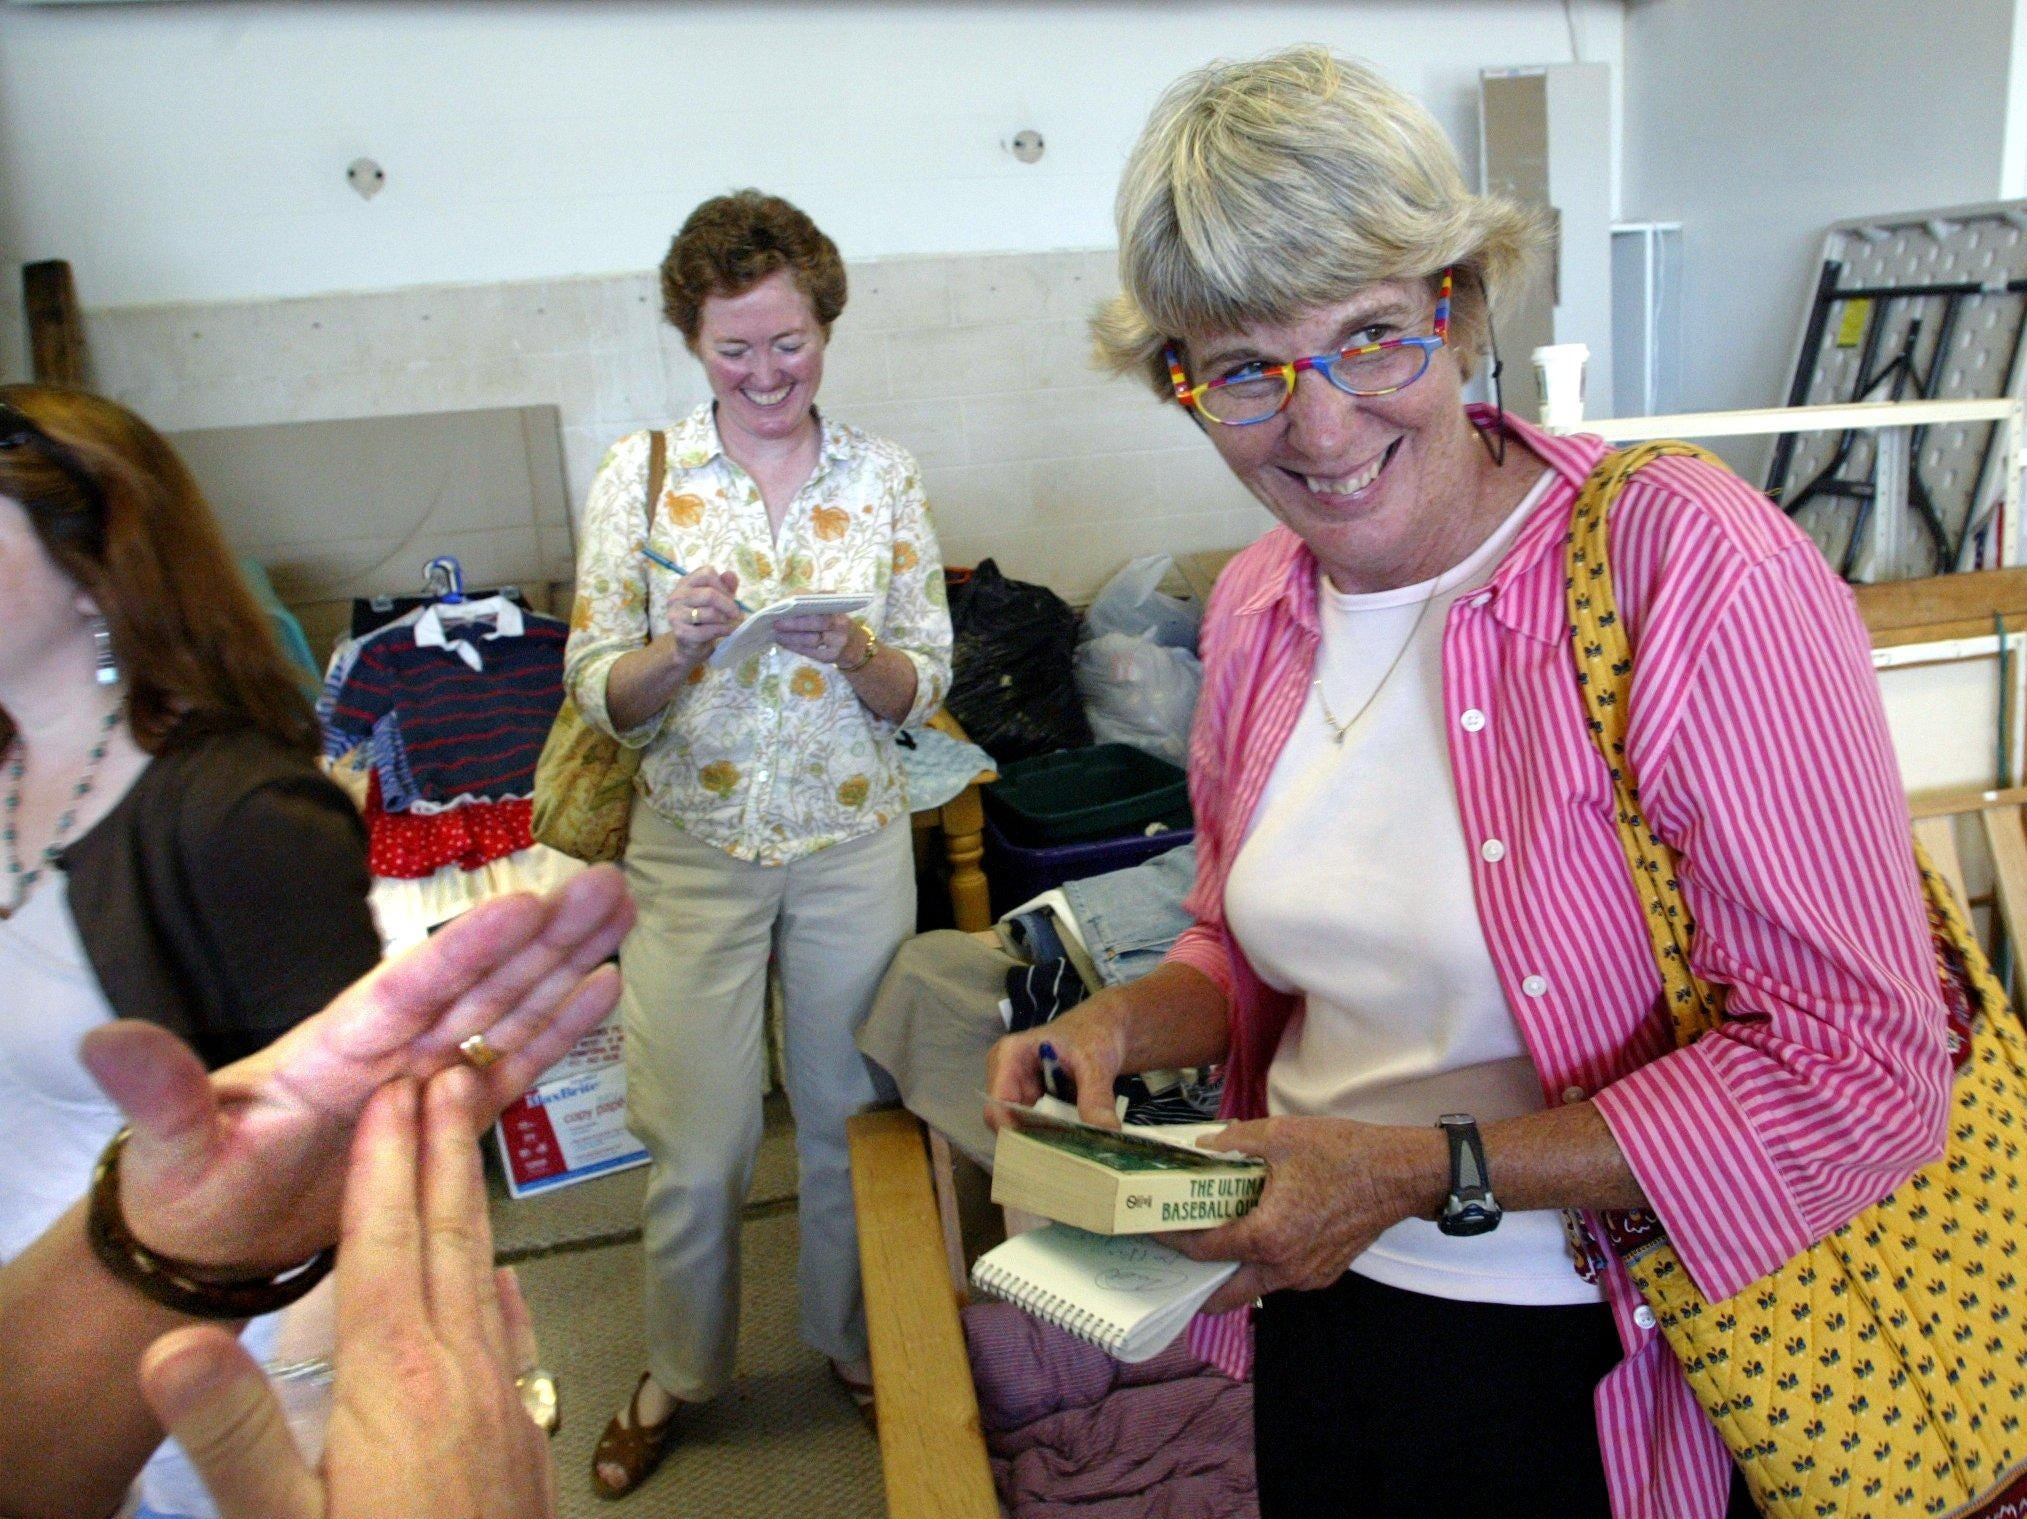 The Tennessean's Mary Hance, right, bargains with an employee at Our Thrift Store in Spring Hill on June 22, 2005, as reporter Sue McClure takes notes.